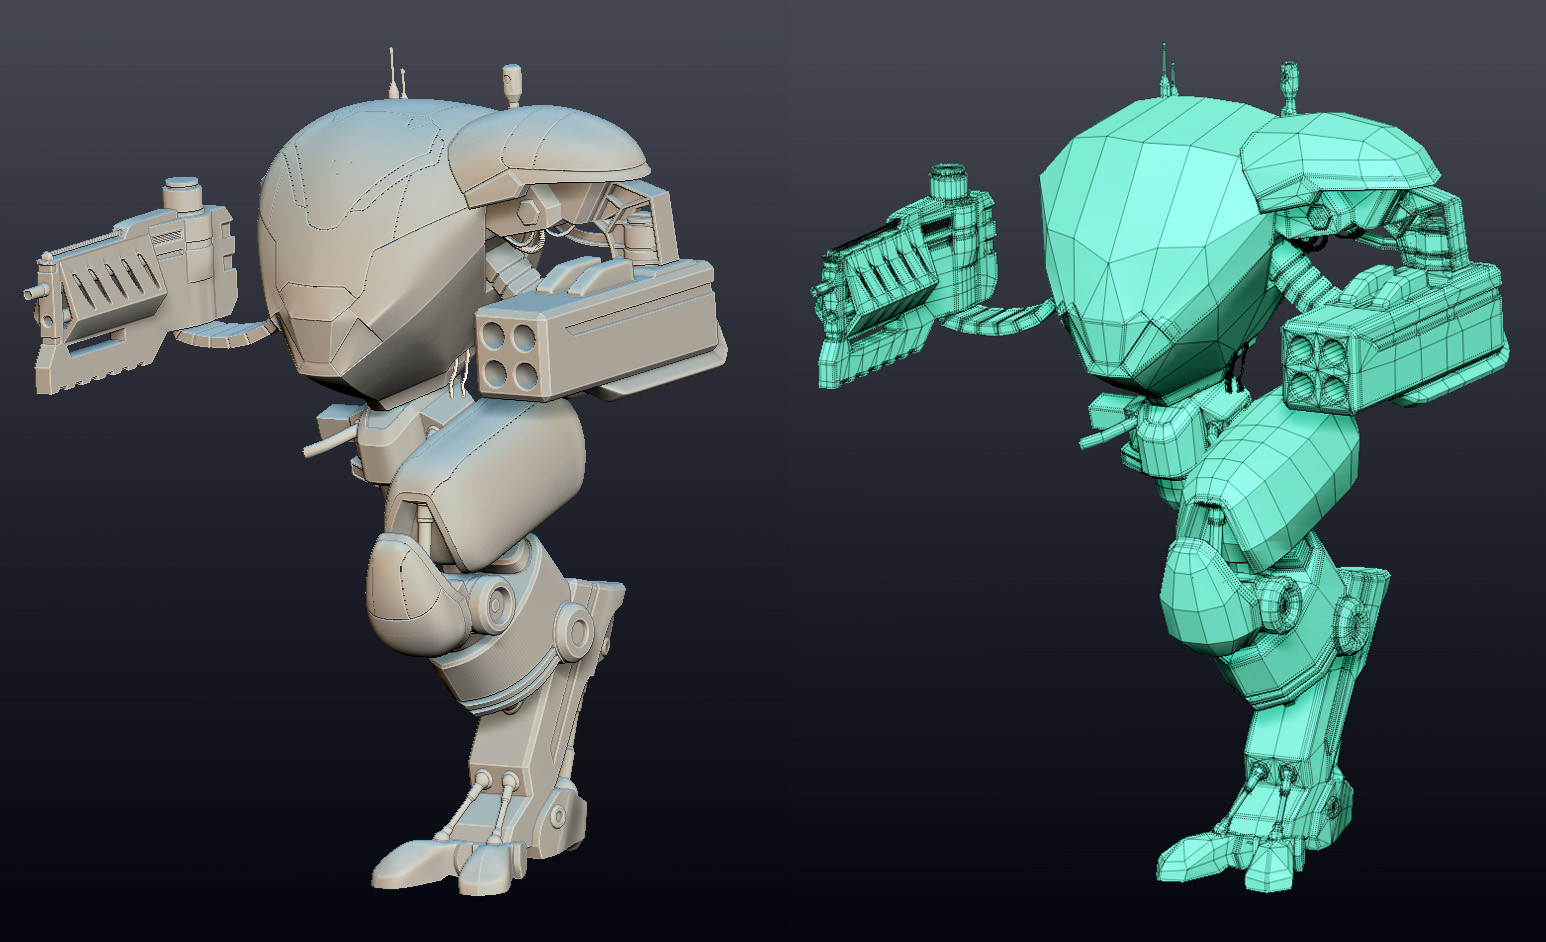 Zbrush high mesh for extra details/panels and the low zmodeler base mesh